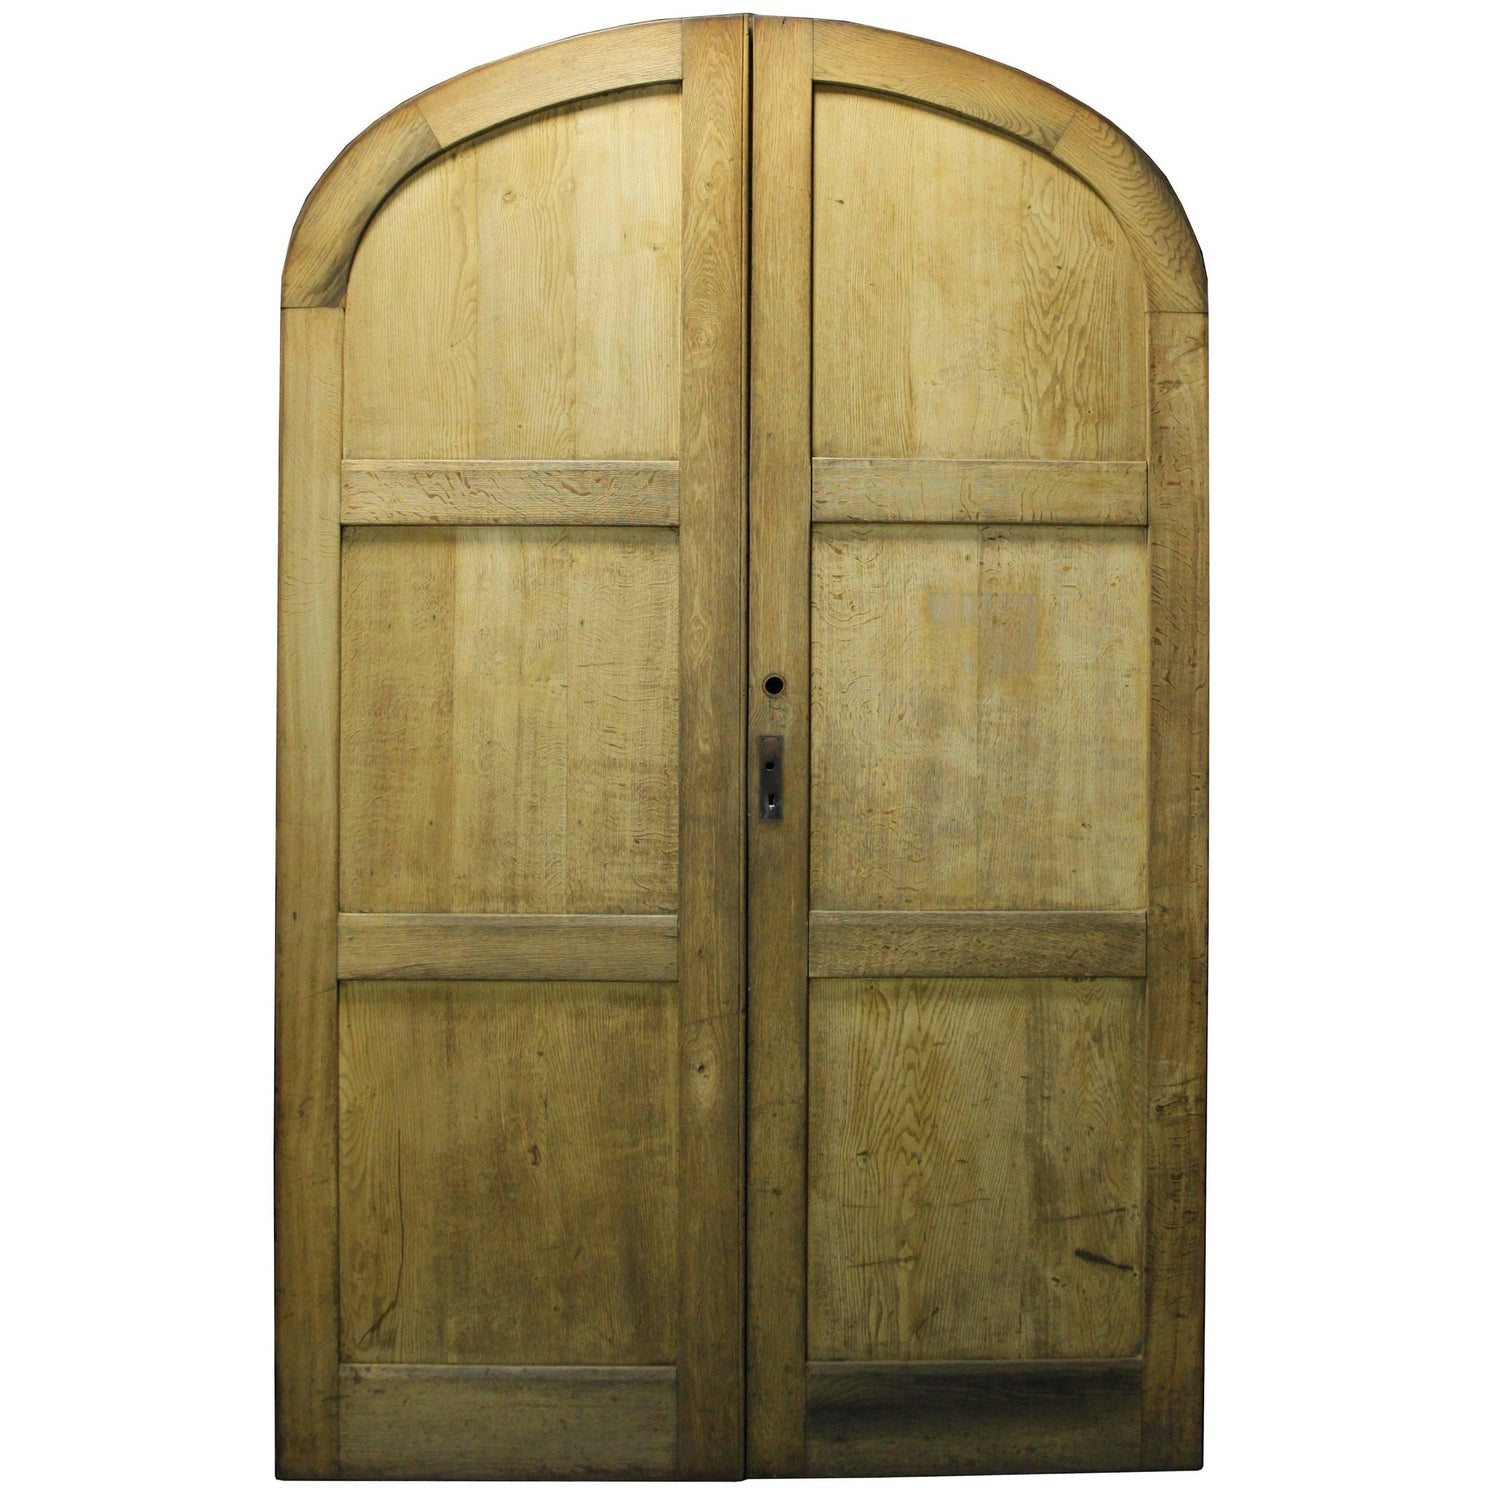 Gothic doors and gates 19 for sale at 1stdibs pair of 1920s exterior arched oak double doors rubansaba